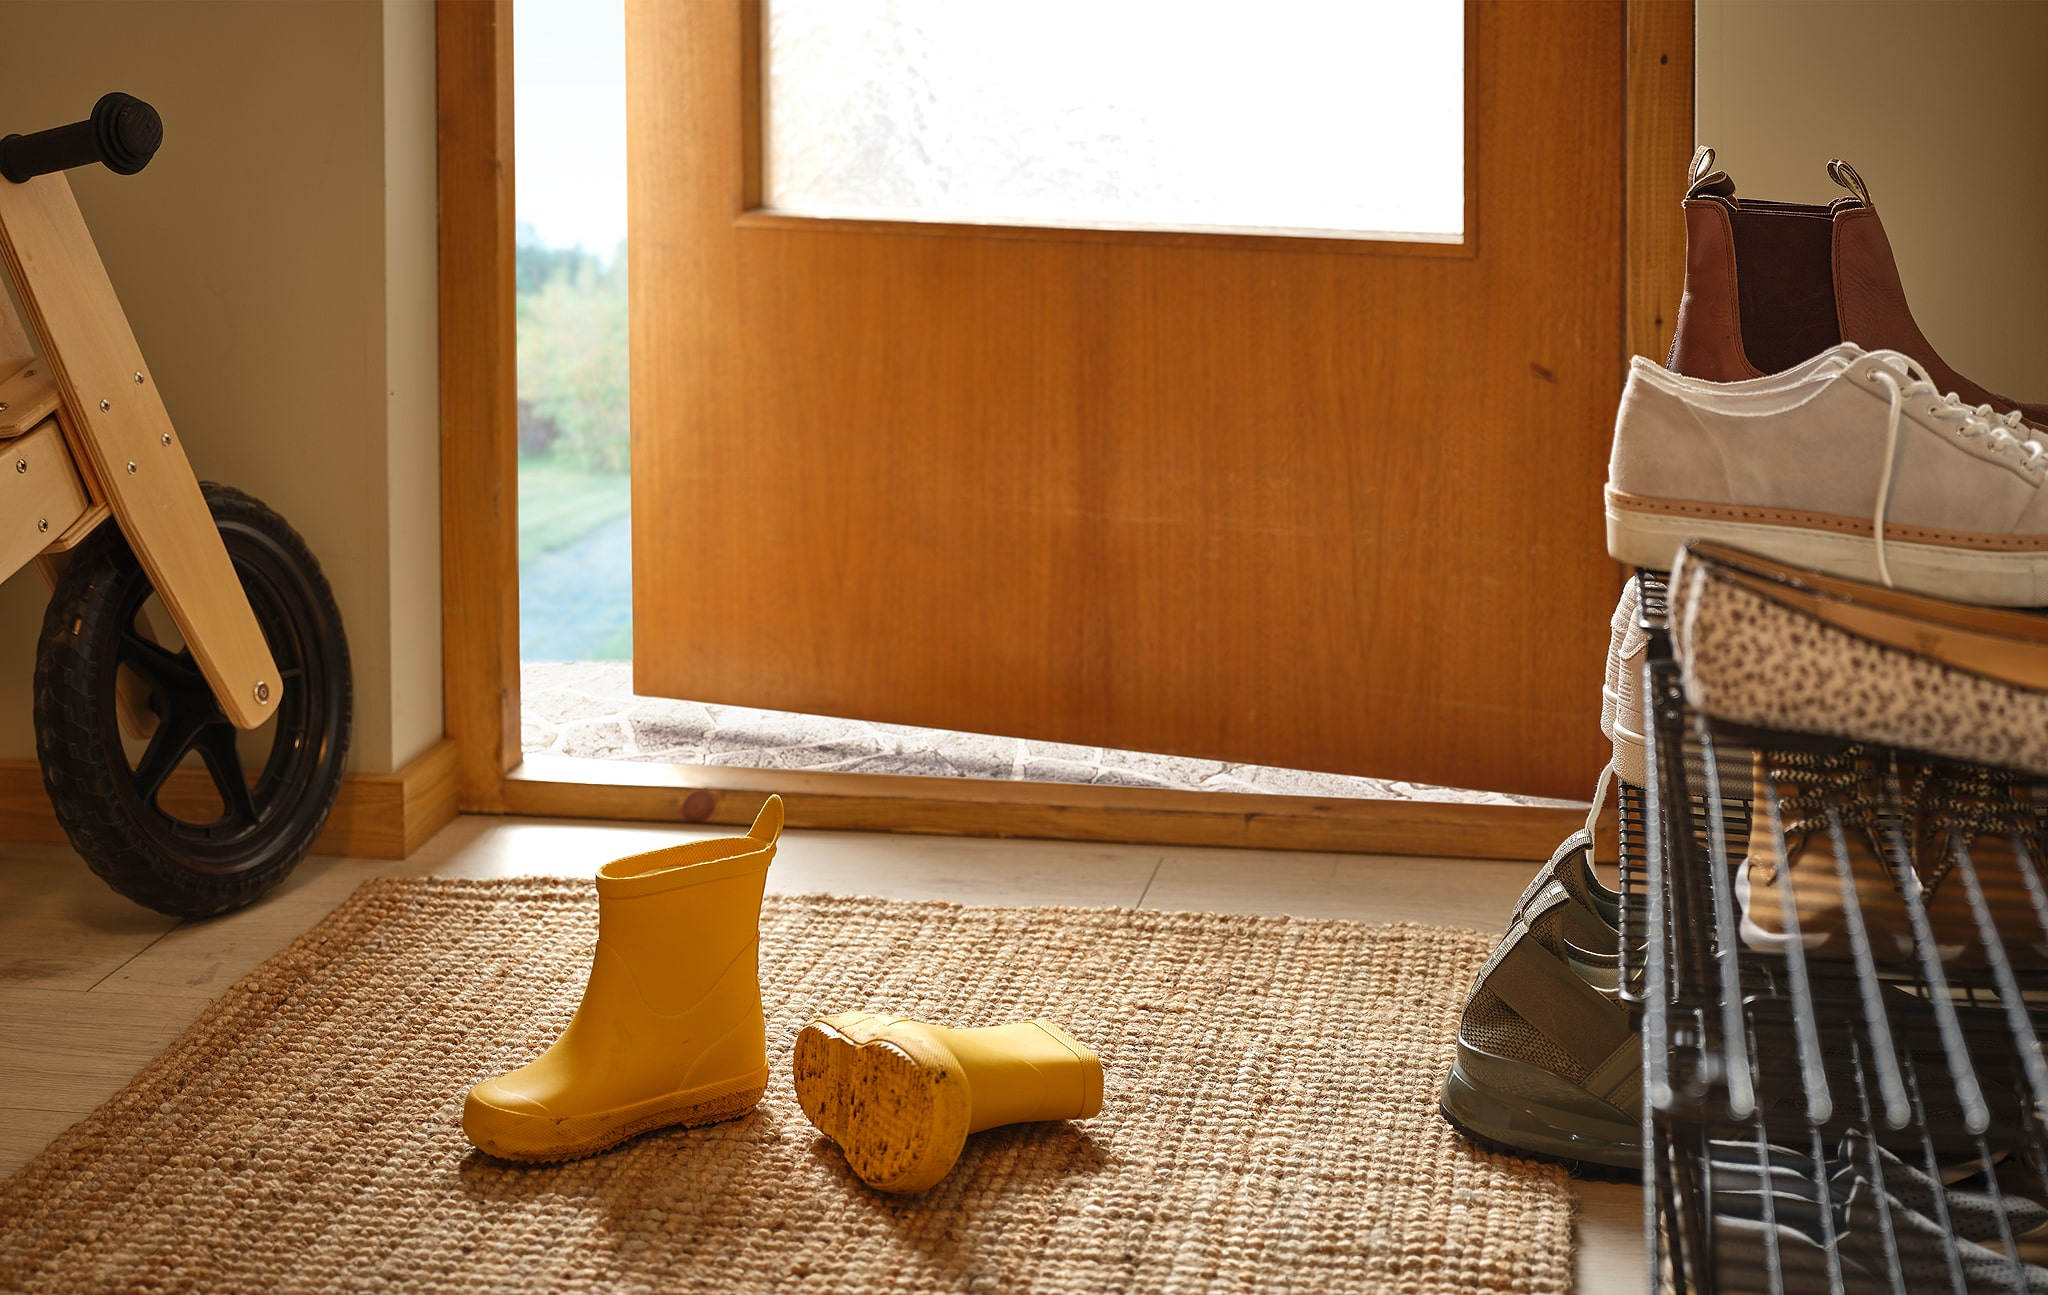 Hallway with a pair of children's wellingtons on the rug, filled shoe rack on the side, a wooden kid's bike against the wall.